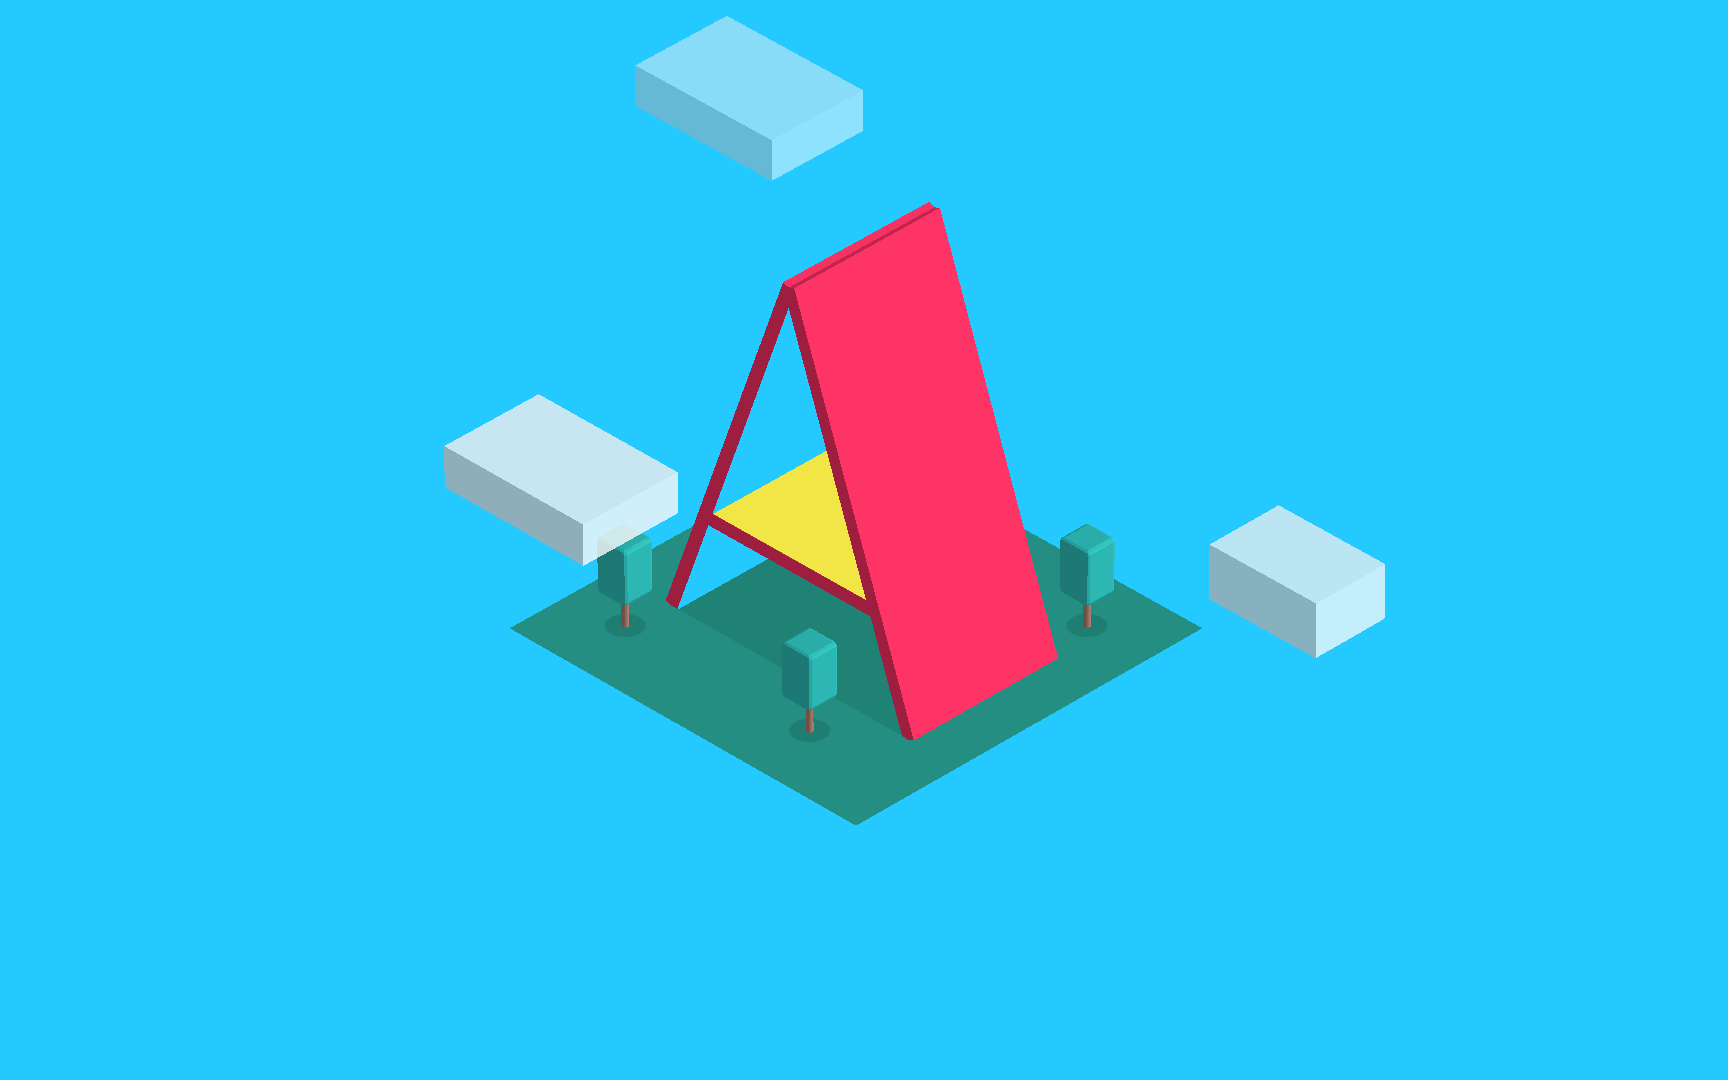 Mozilla A-Frame: WebVR Starting With One Line of Code